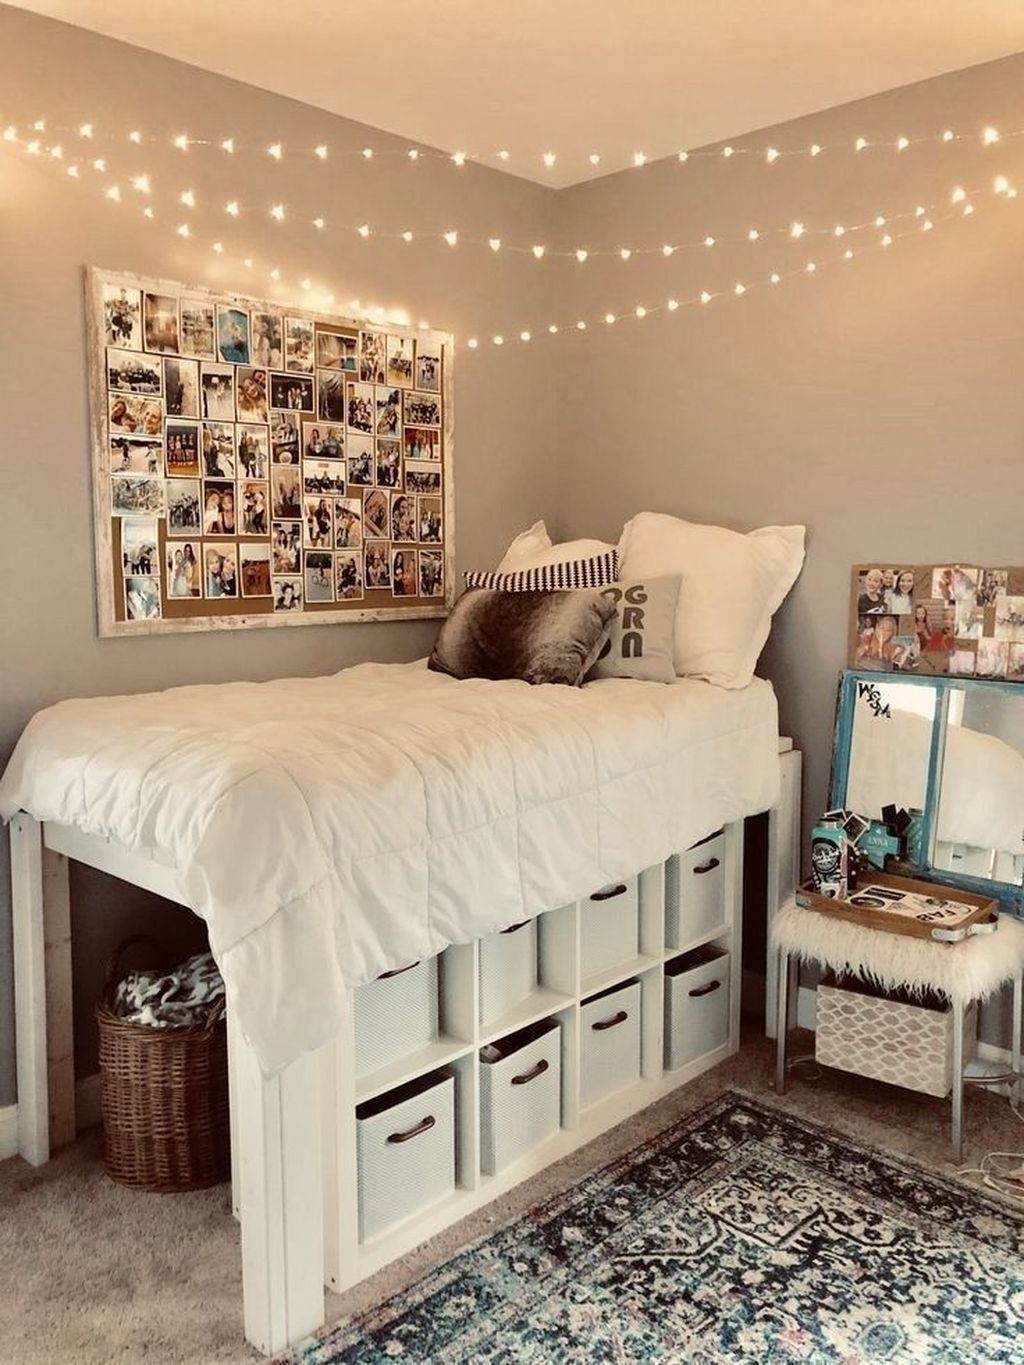 Admirable Small Bedroom Decor Ideas You Never Seen Before 19